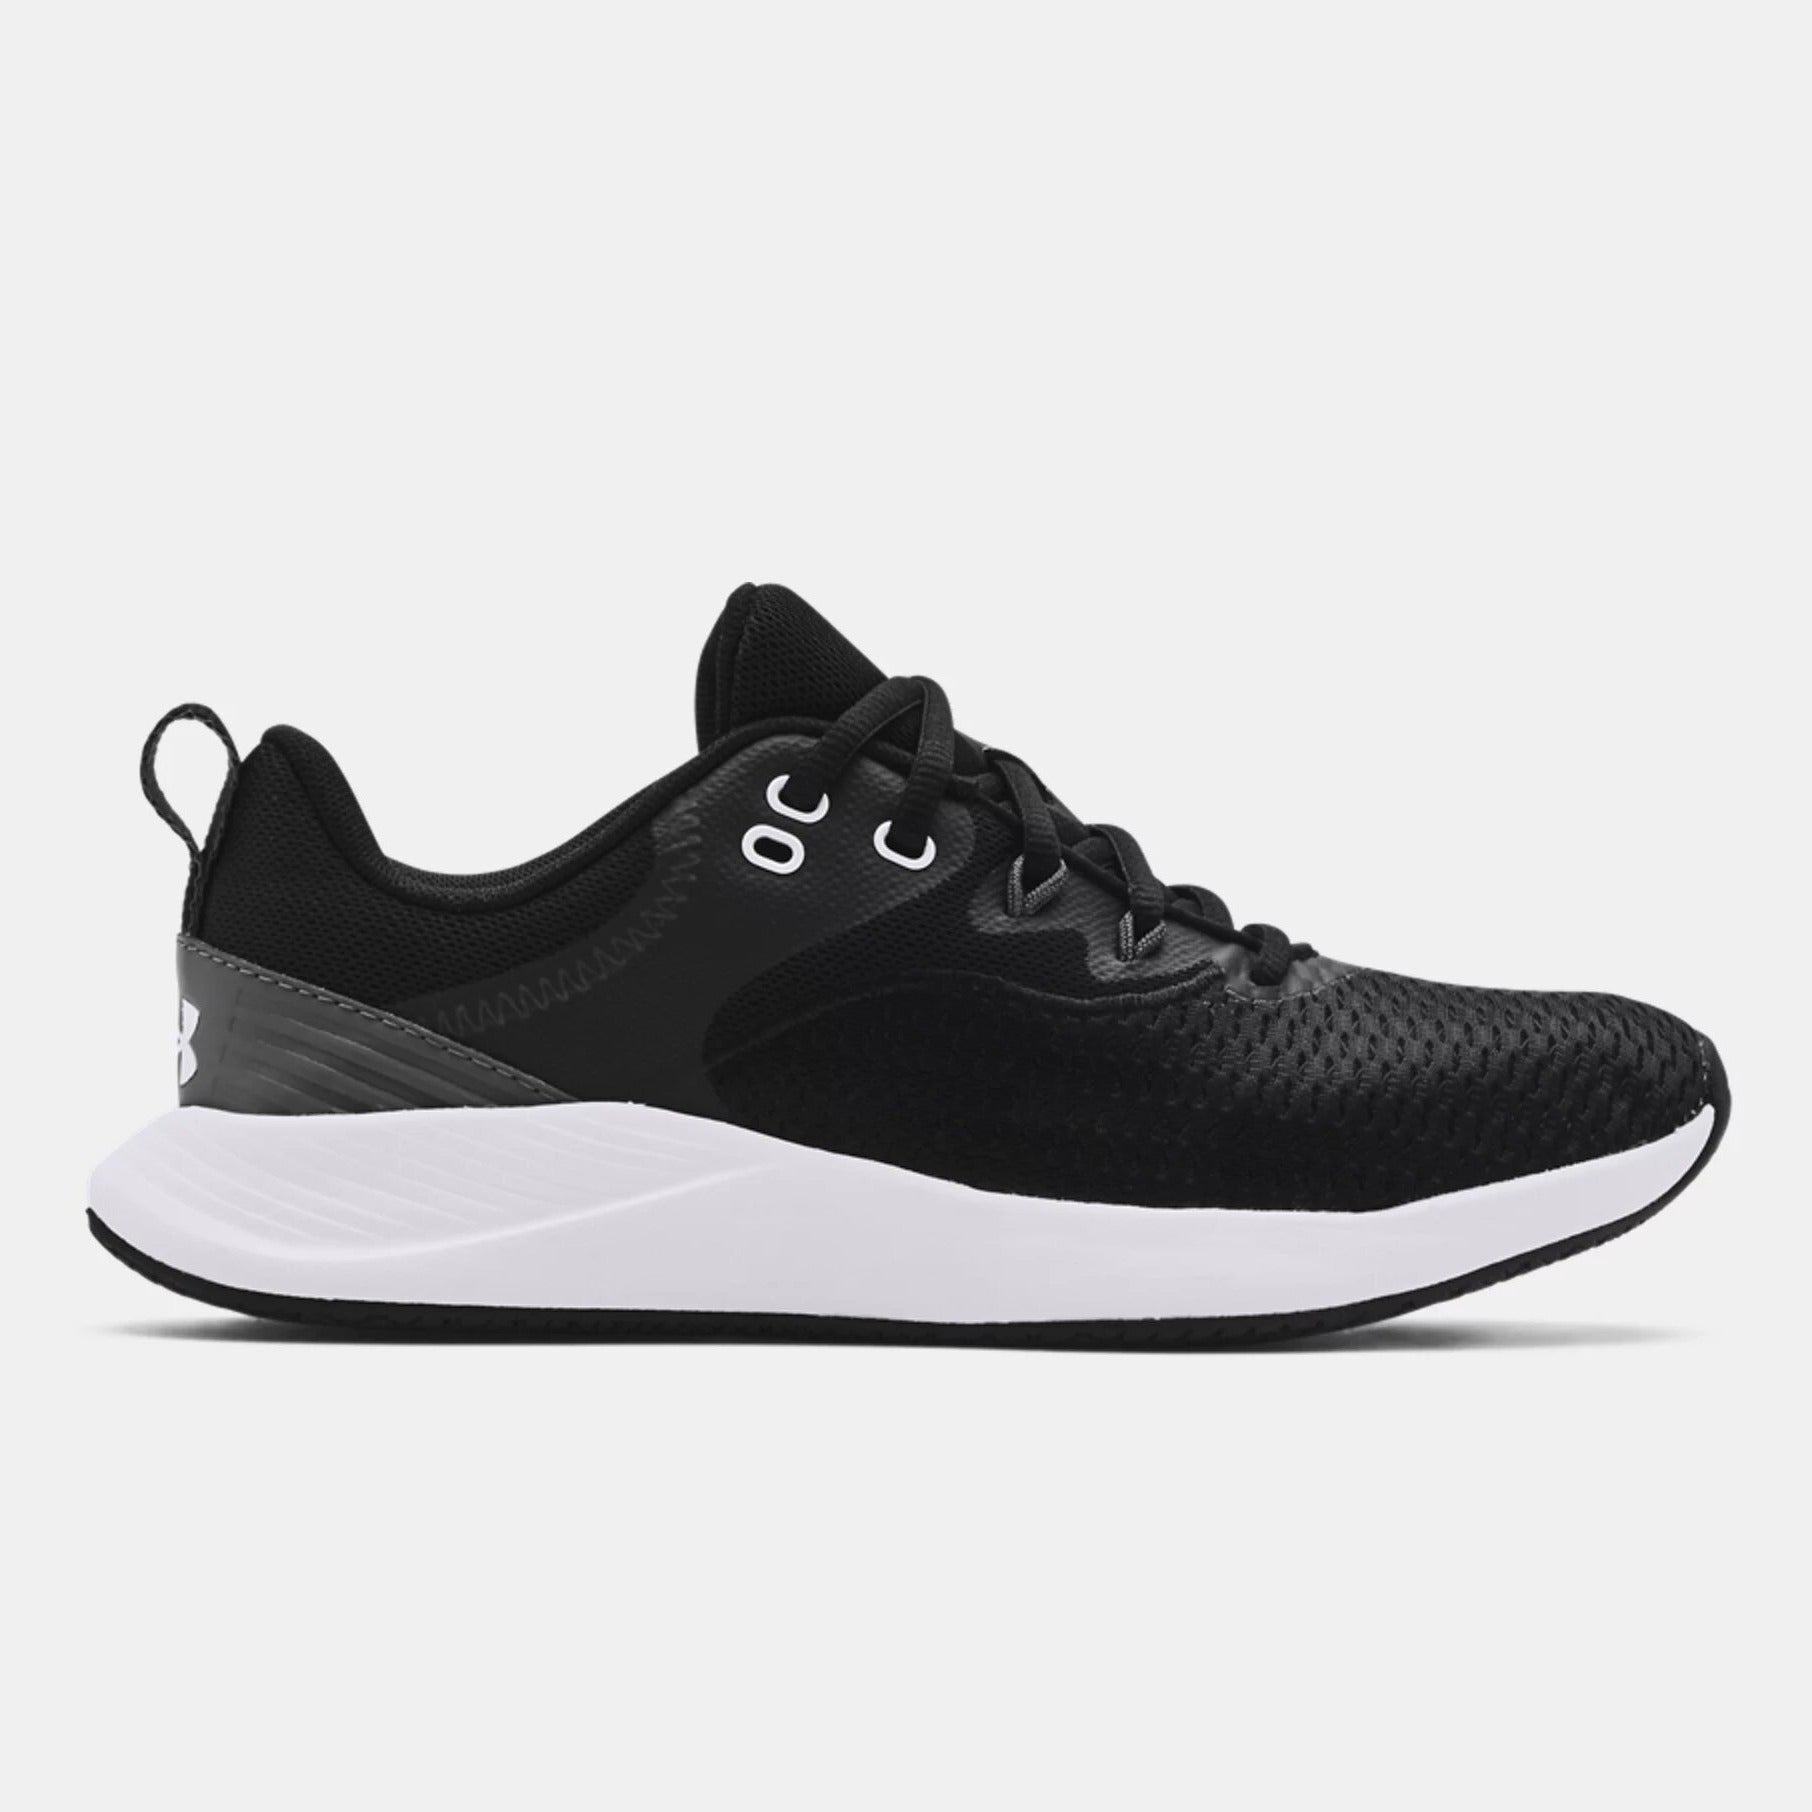 Under Armour Women's UA Charged Breathe TR 3 Training Shoes - Black/White